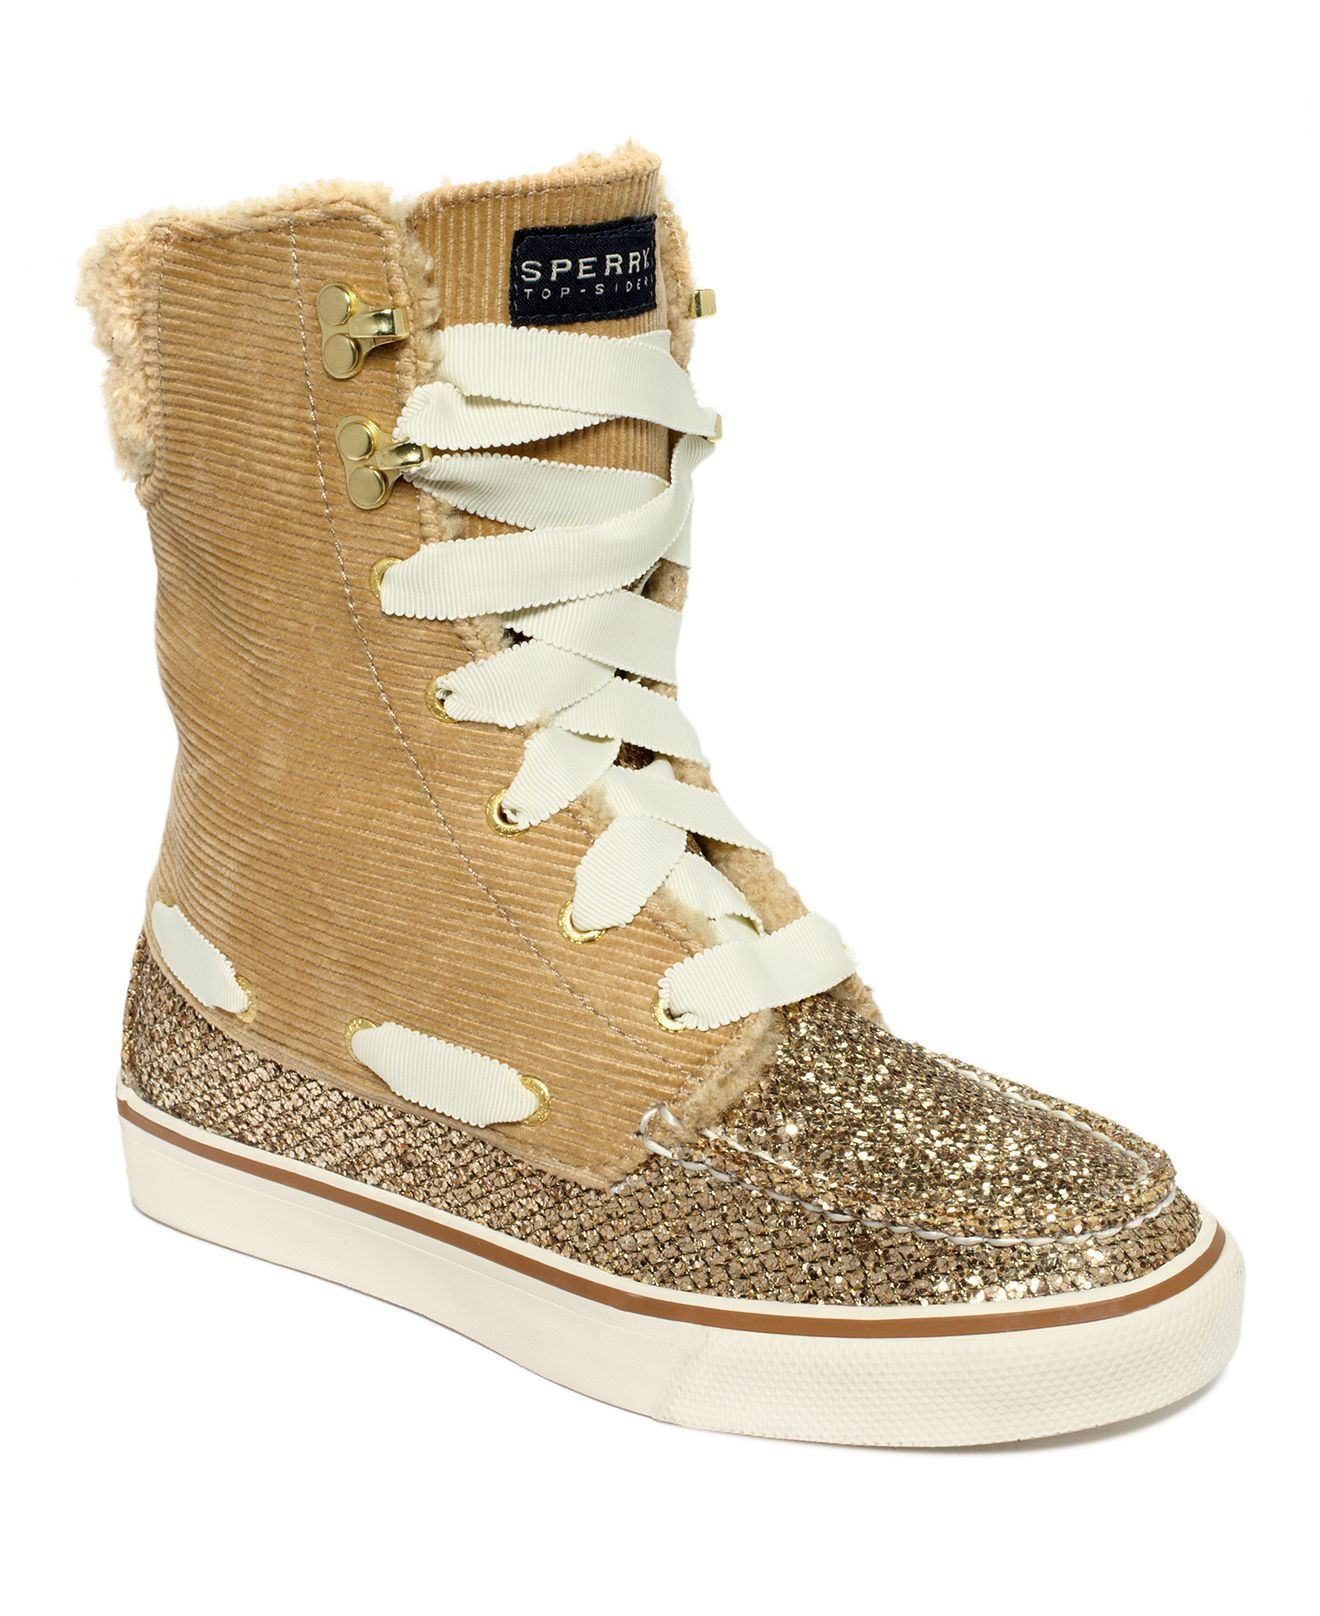 I WANT SO BAD! Sperry Top-Sider Women's Shoes, Acklins Booties - Shoes - Macy's